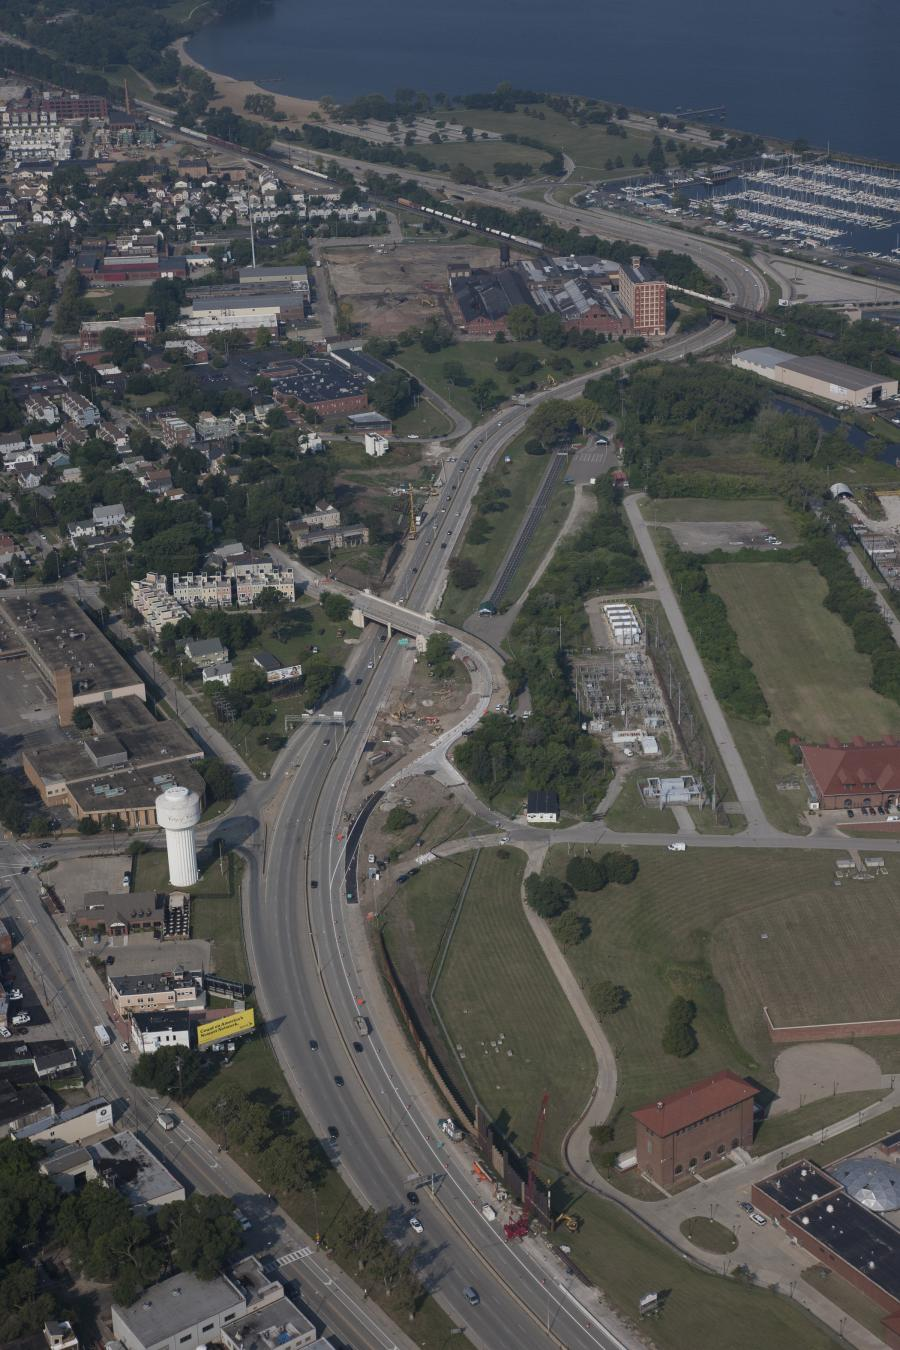 Key elements of the Lakefront West project in Cleveland, an Ohio Department of Transportation and city of Cleveland initiative/partnership, are being constructed during the third and final contract. This $41.5 million phase, awarded to The Great Lakes Con